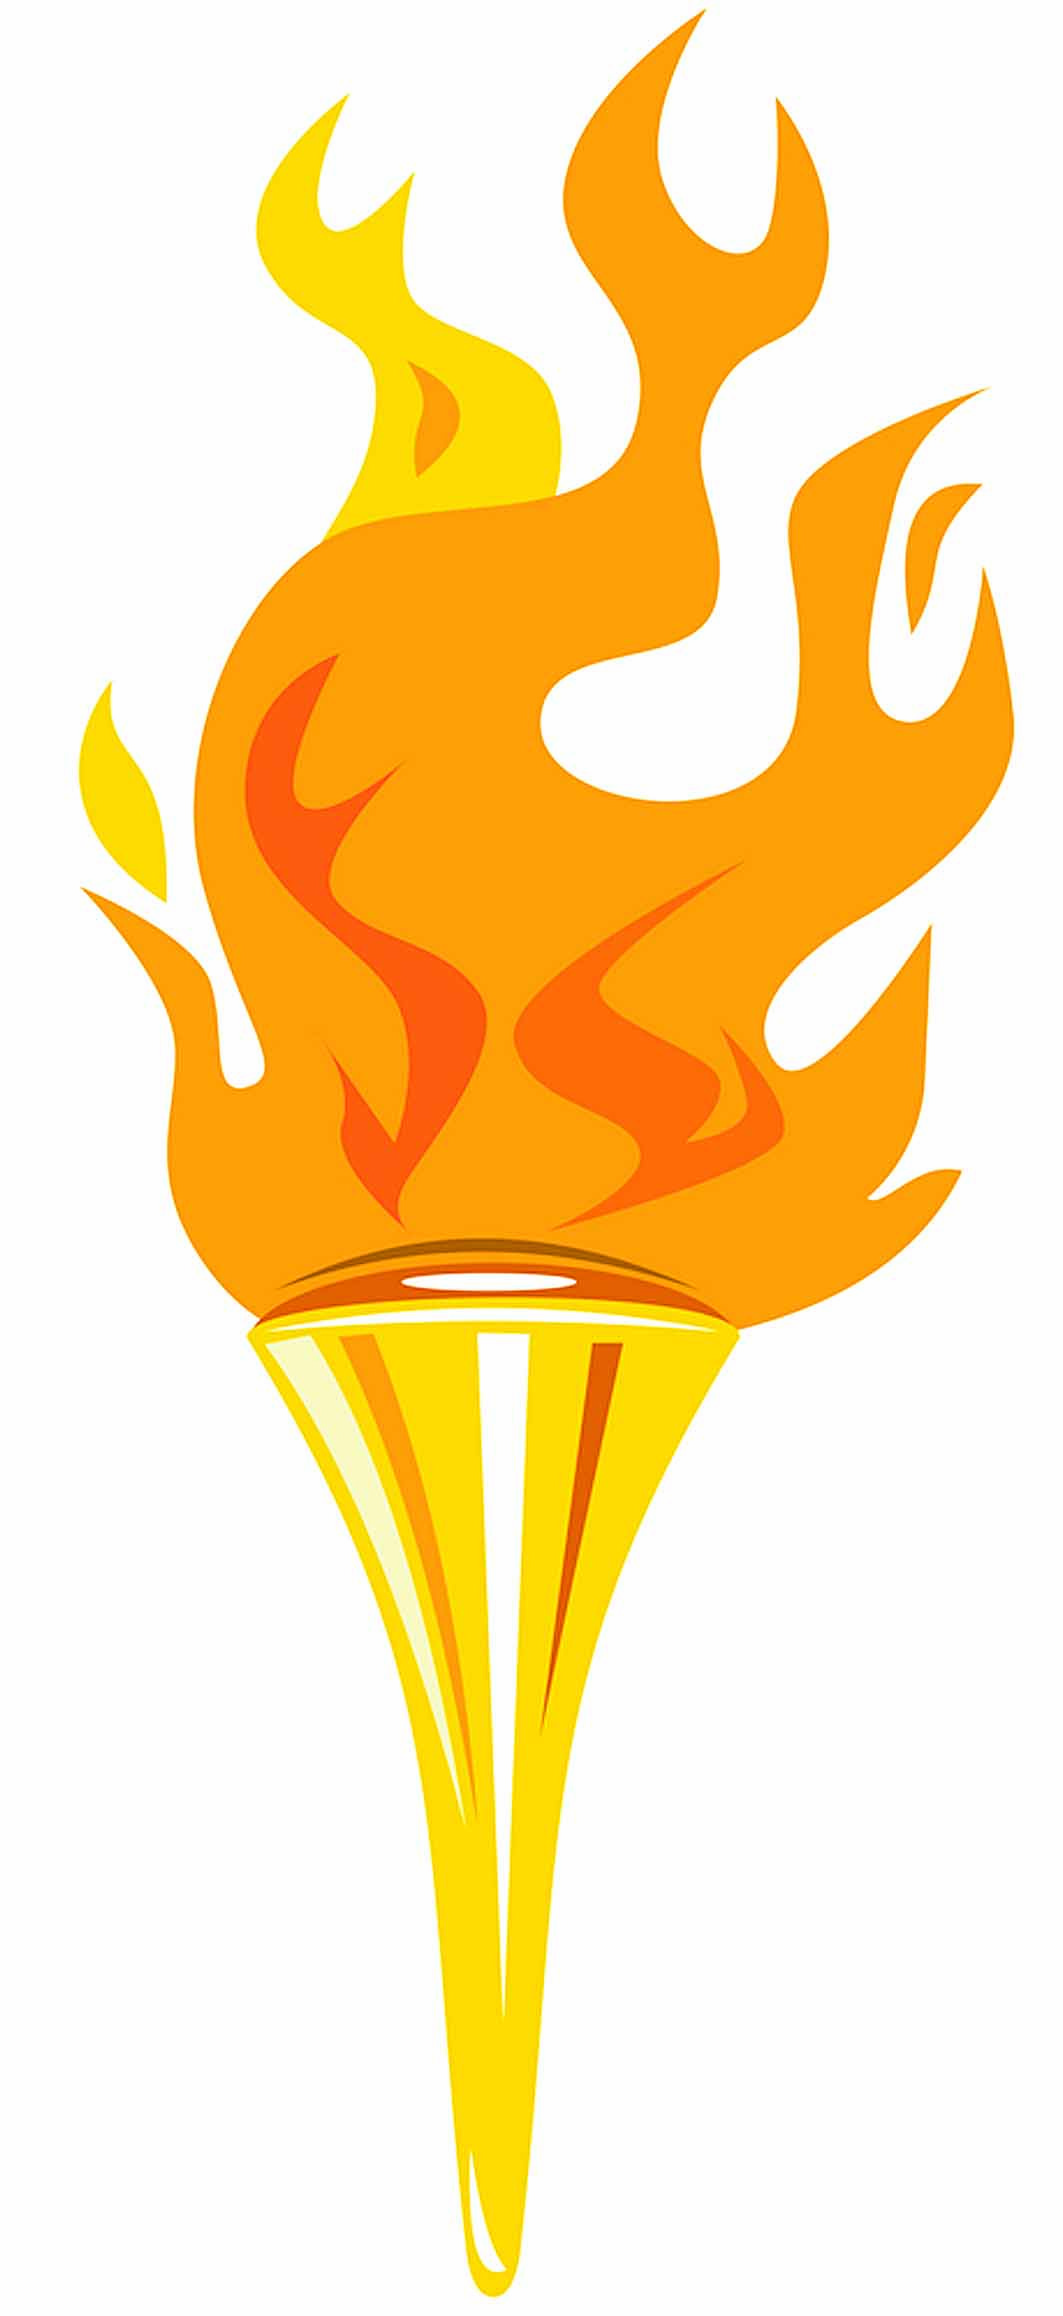 Olympic torch clipart free banner royalty free library Olympic torch clipart free » Clipart Portal banner royalty free library